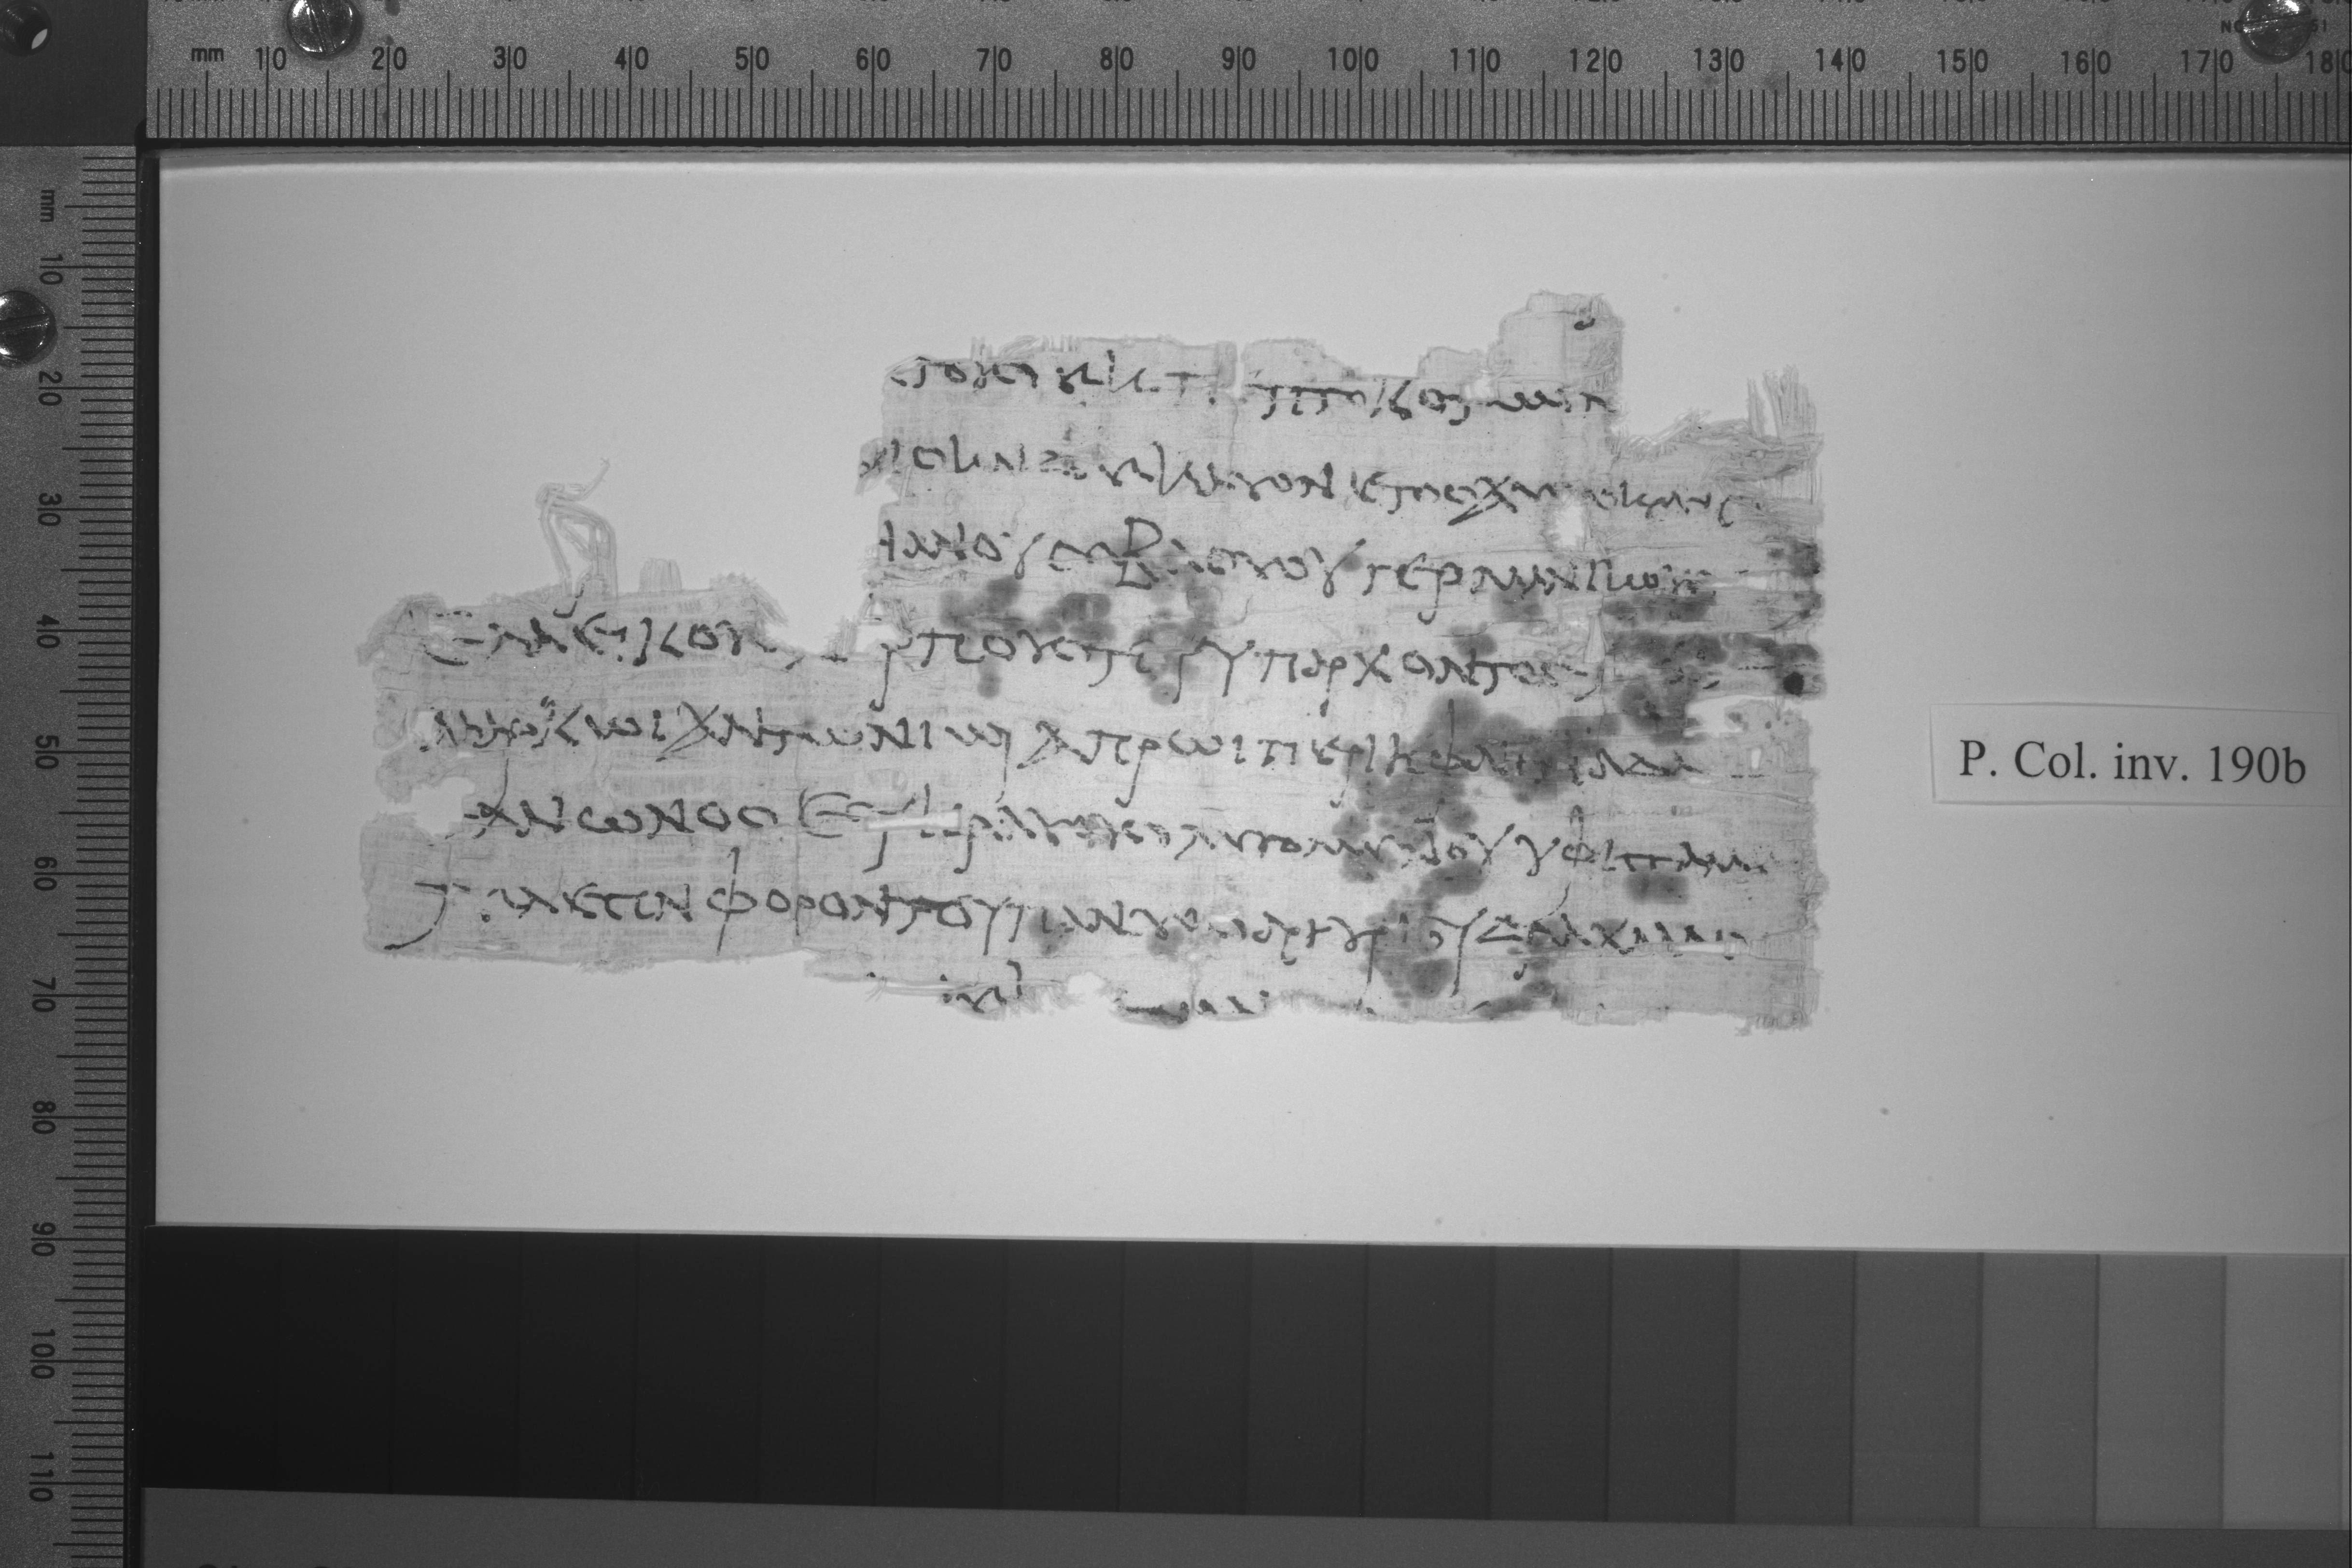 A multispectral image of a very old scrap of ancient Greek writing.